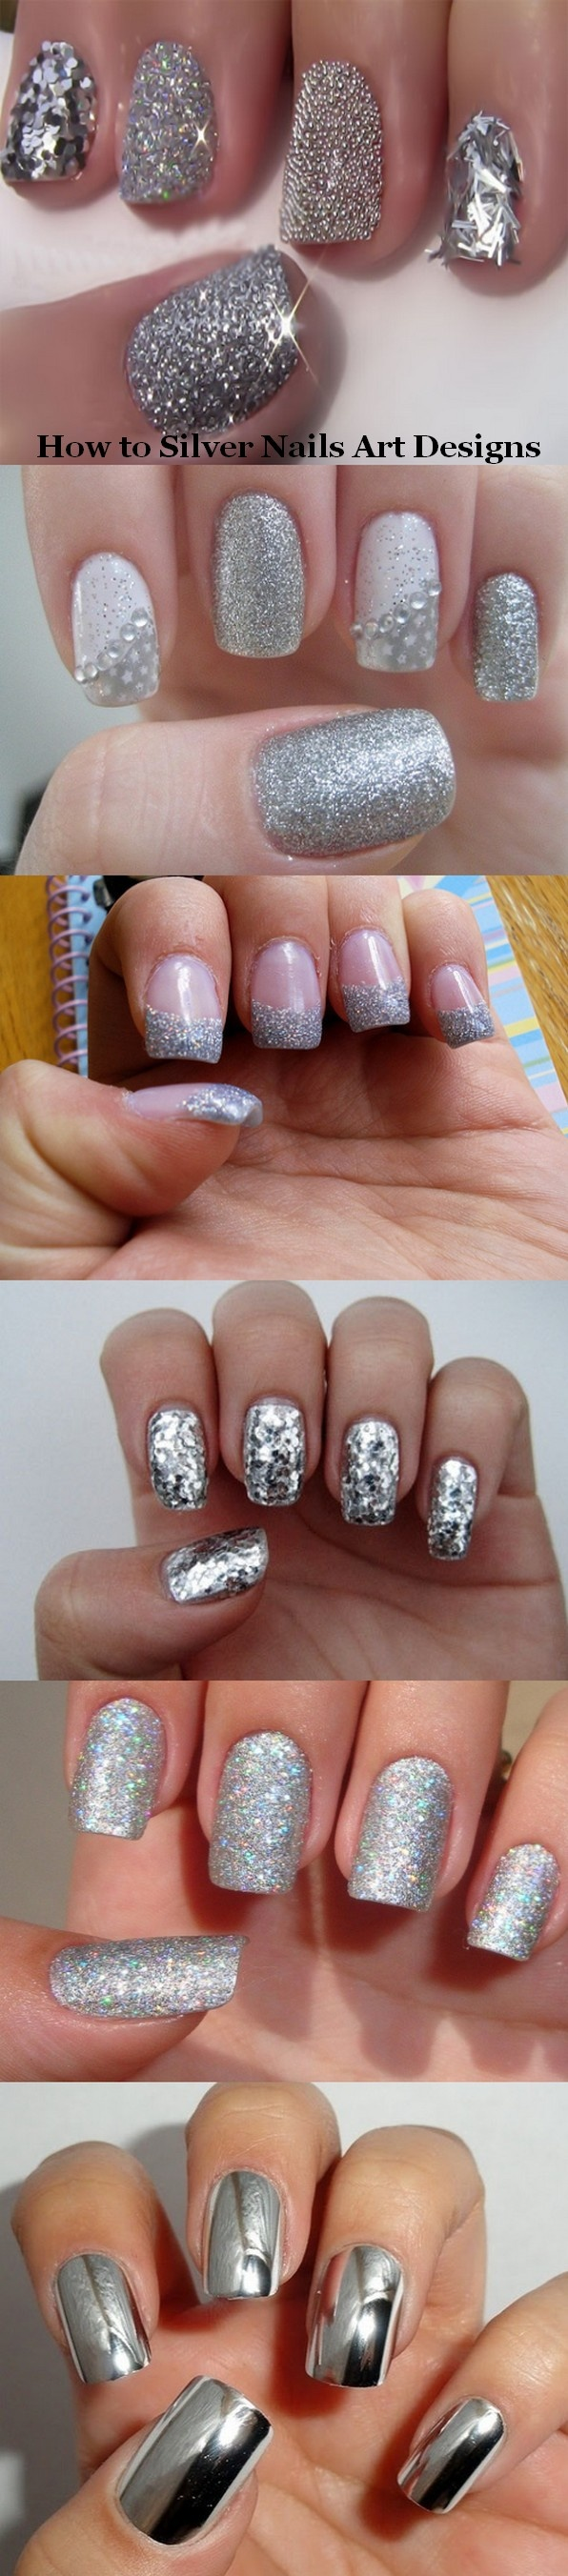 best nail art images on pinterest nail design nail scissors